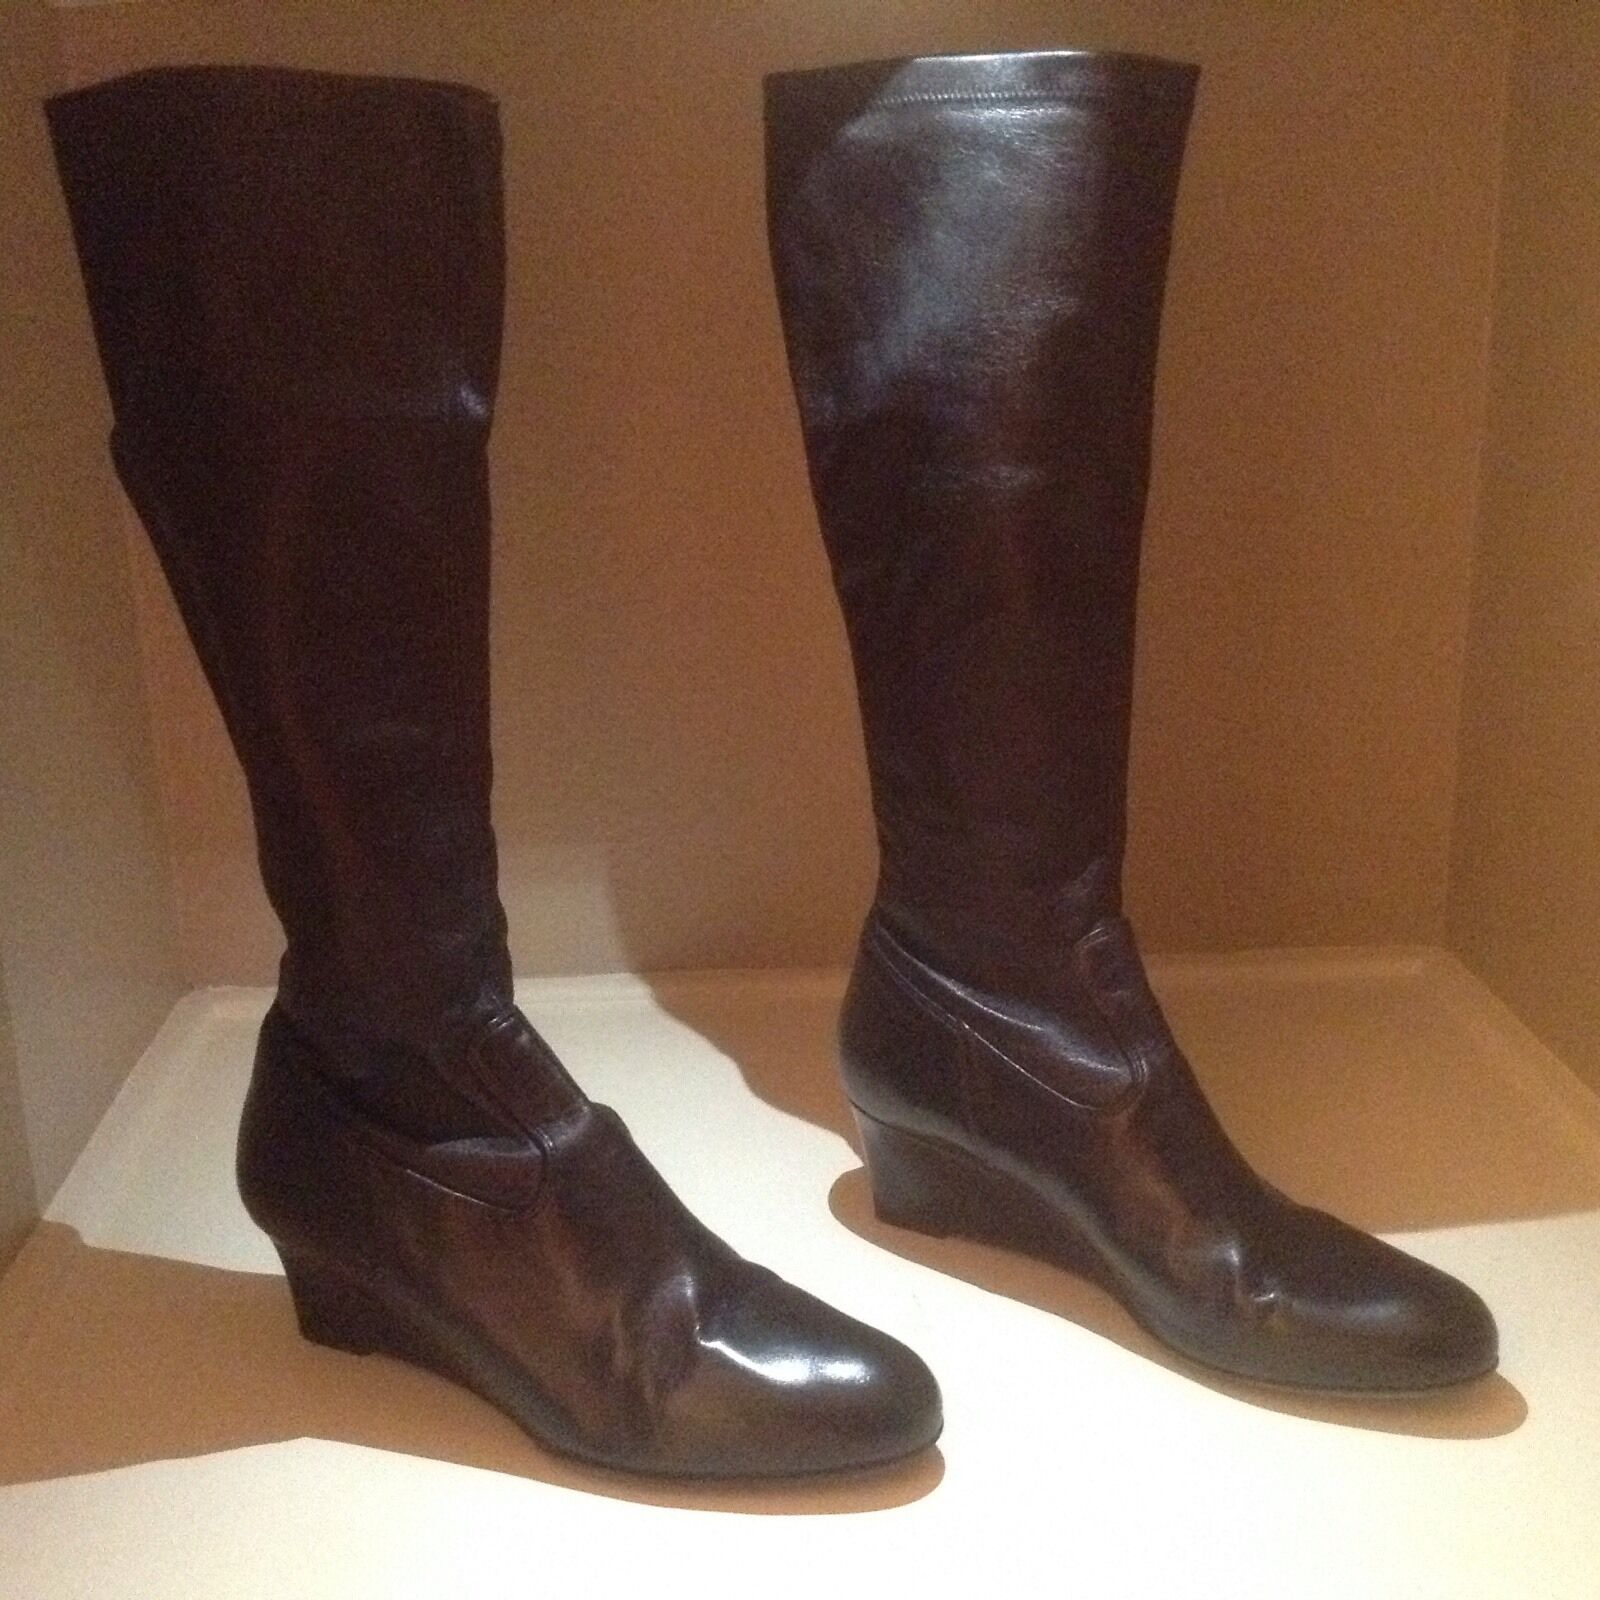 EUC BALLY Black Leather Wedge Knee Boots - Size 40.5